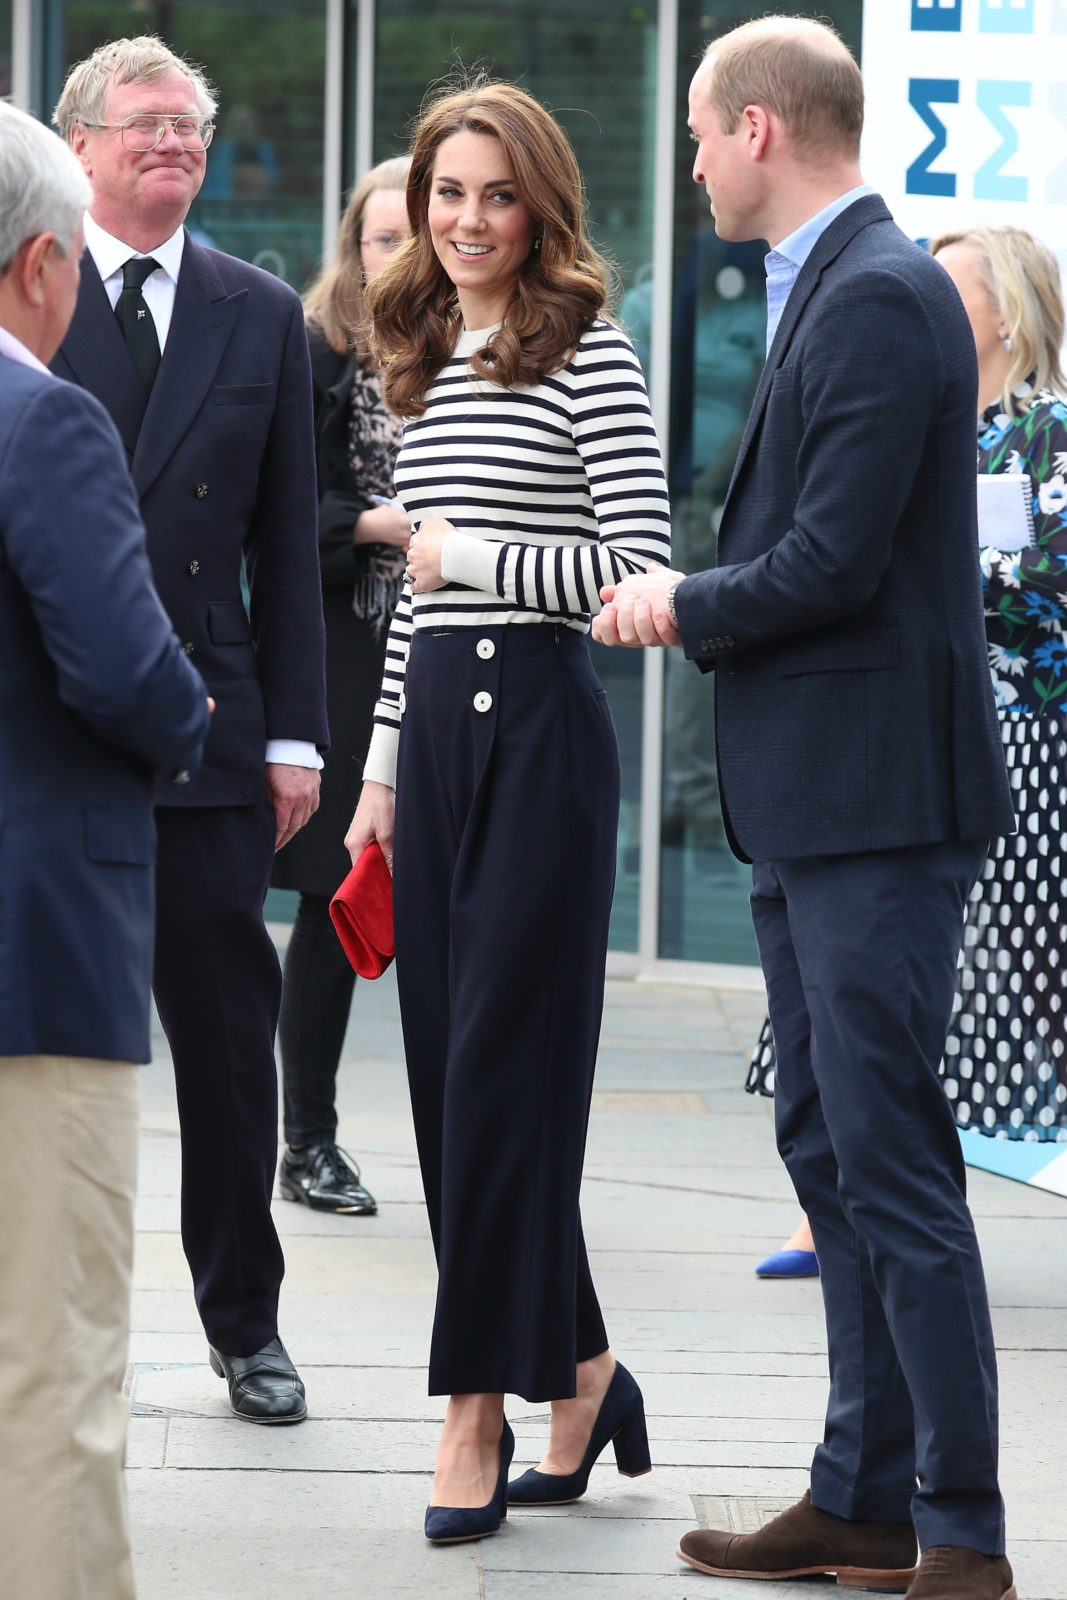 Catherine and William speaking at the launch of a new sailing race on Tuesday. Source: Getty